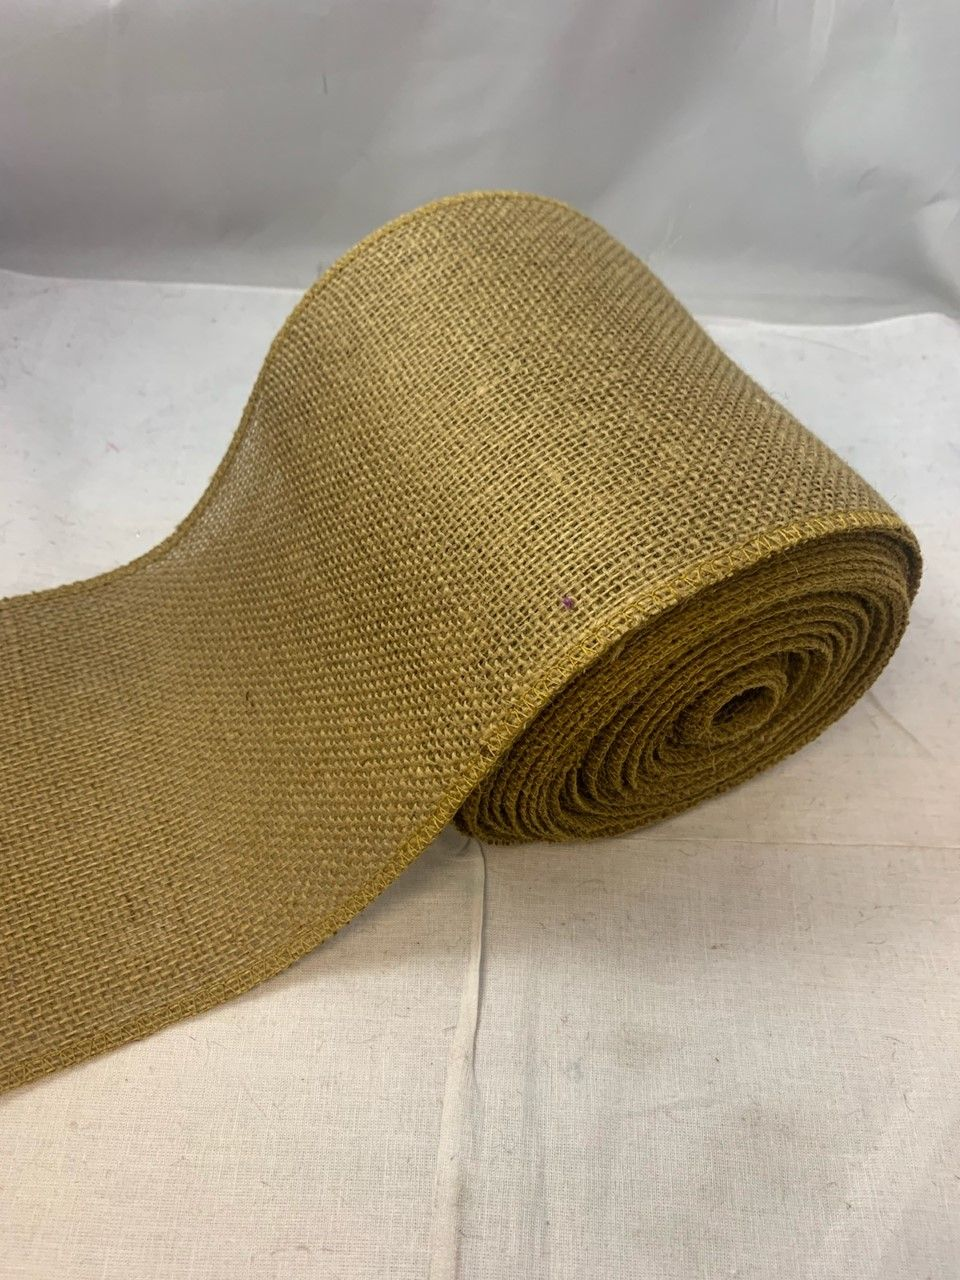 6 Idaho Burlap Ribbon 10 Yard Roll In 2020 Burlap Ribbon Burlap Ribbon